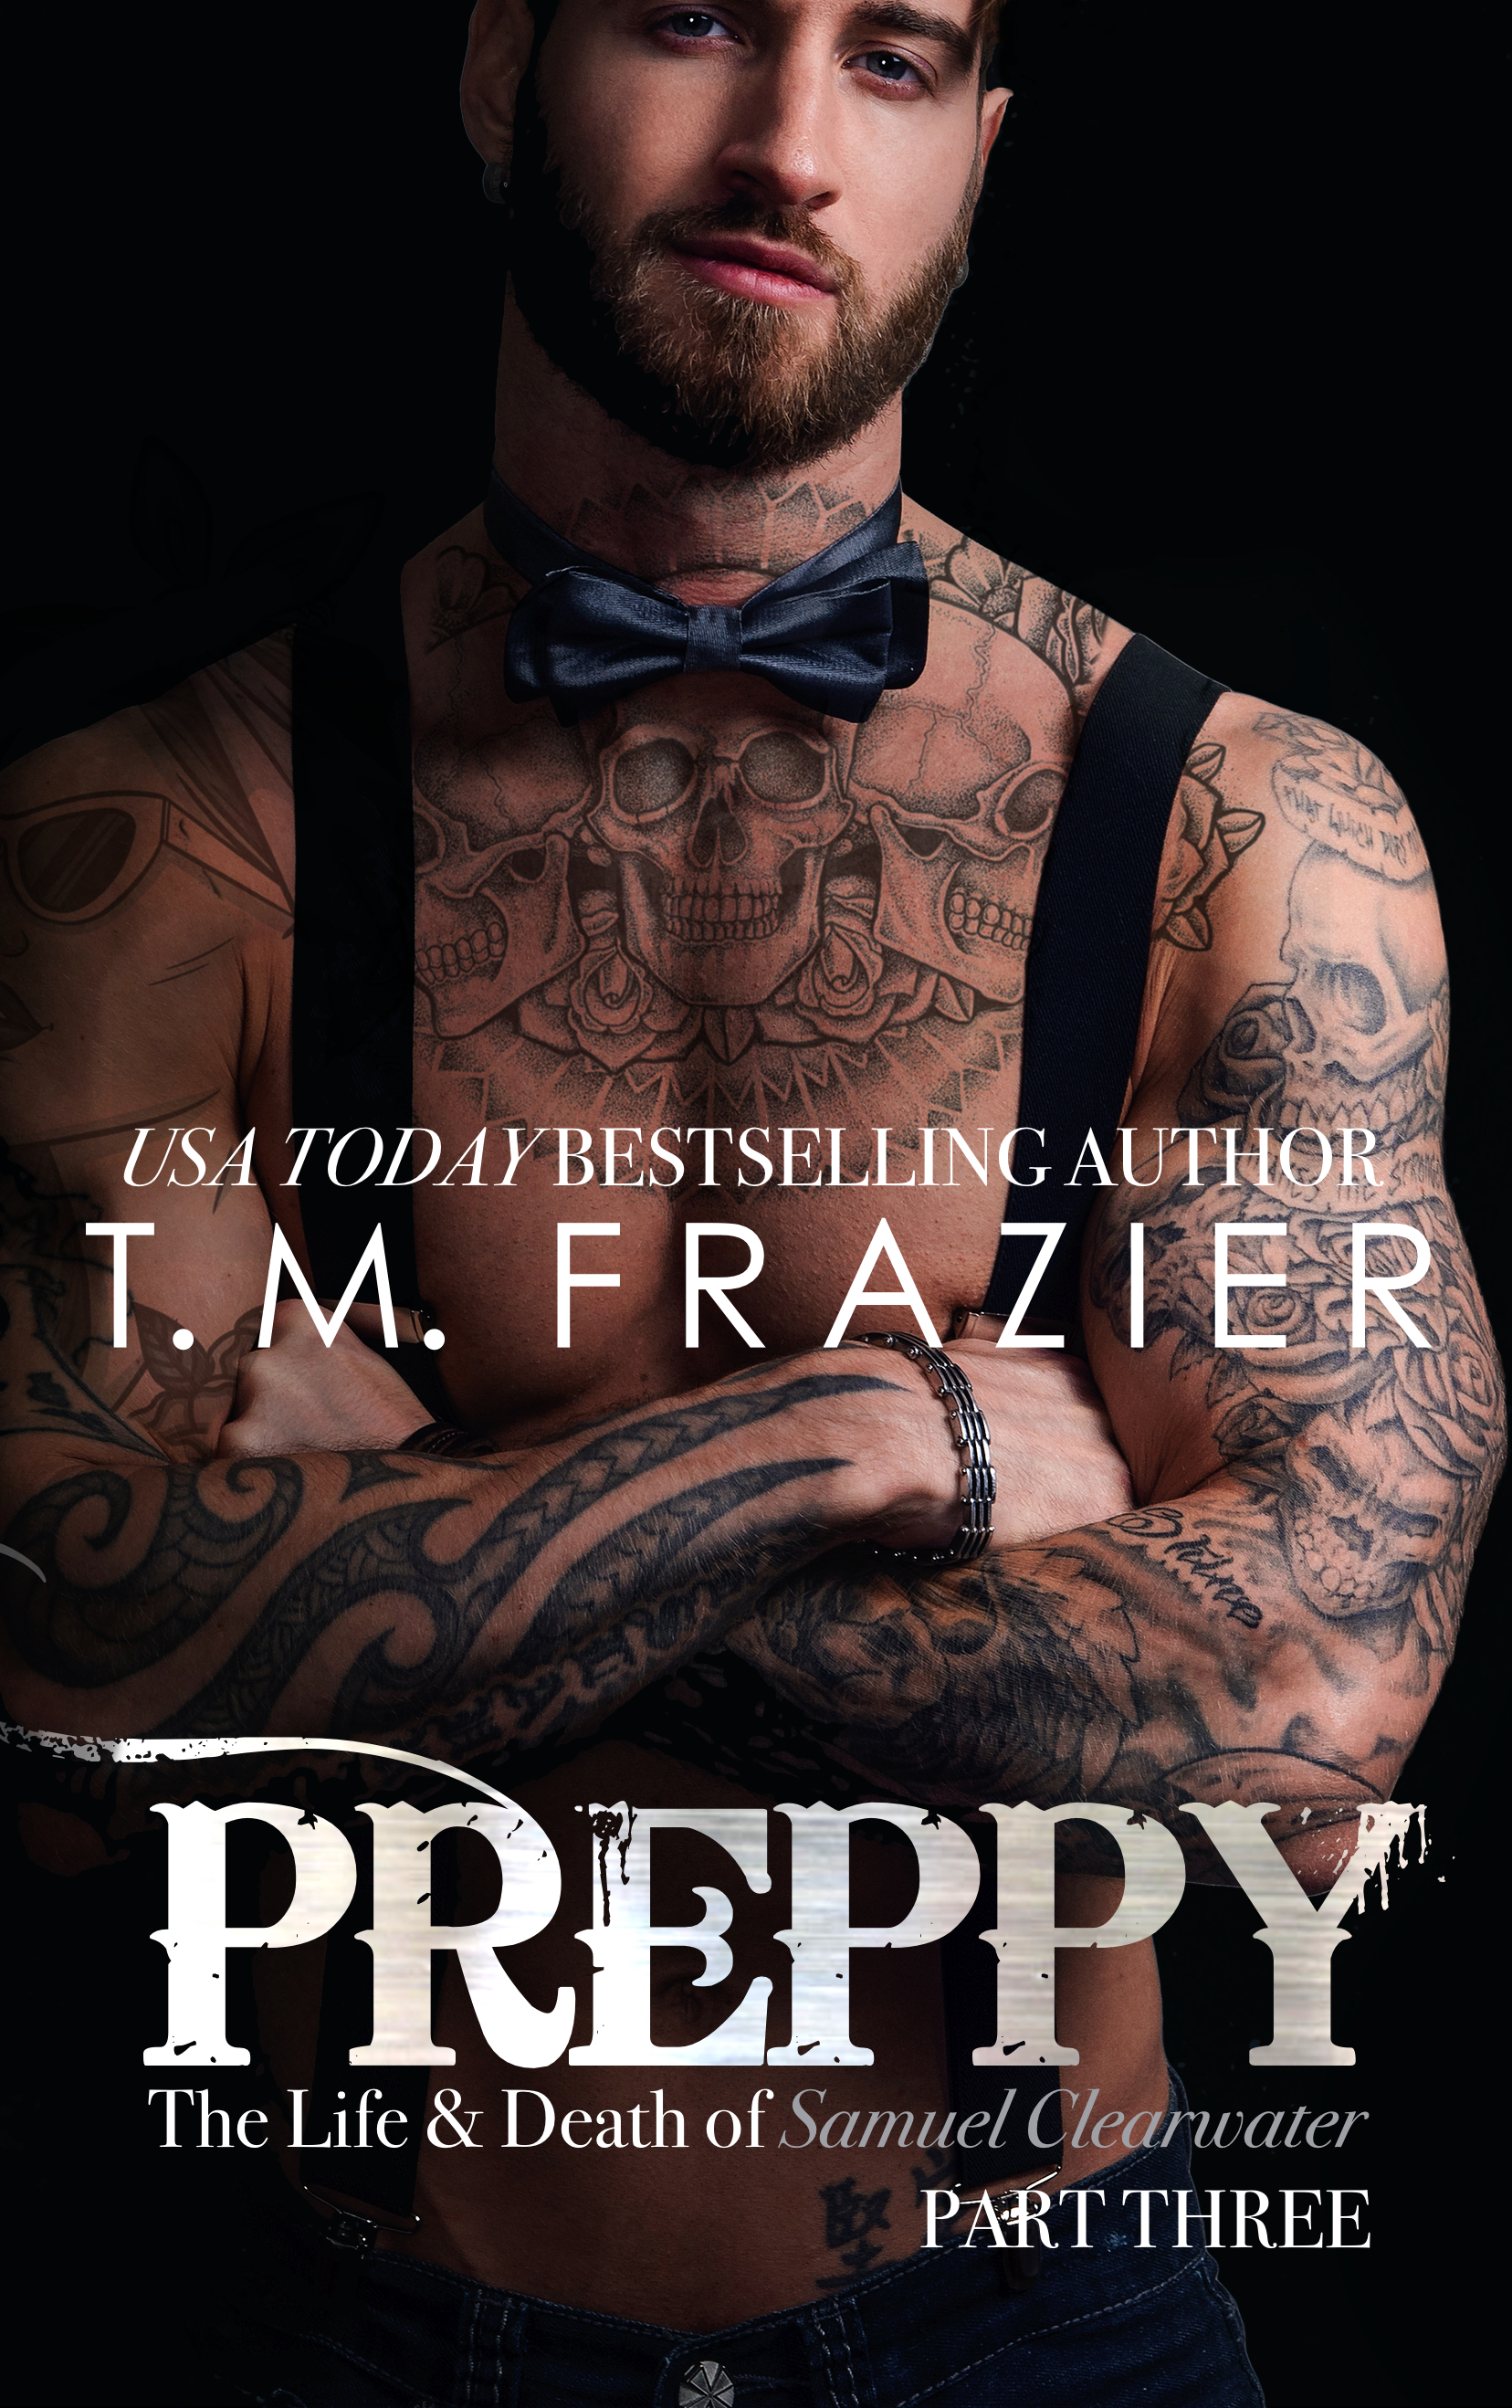 Preppy: The Life and Death of Samuel Clearwater, Part Three by T.M. Frazier